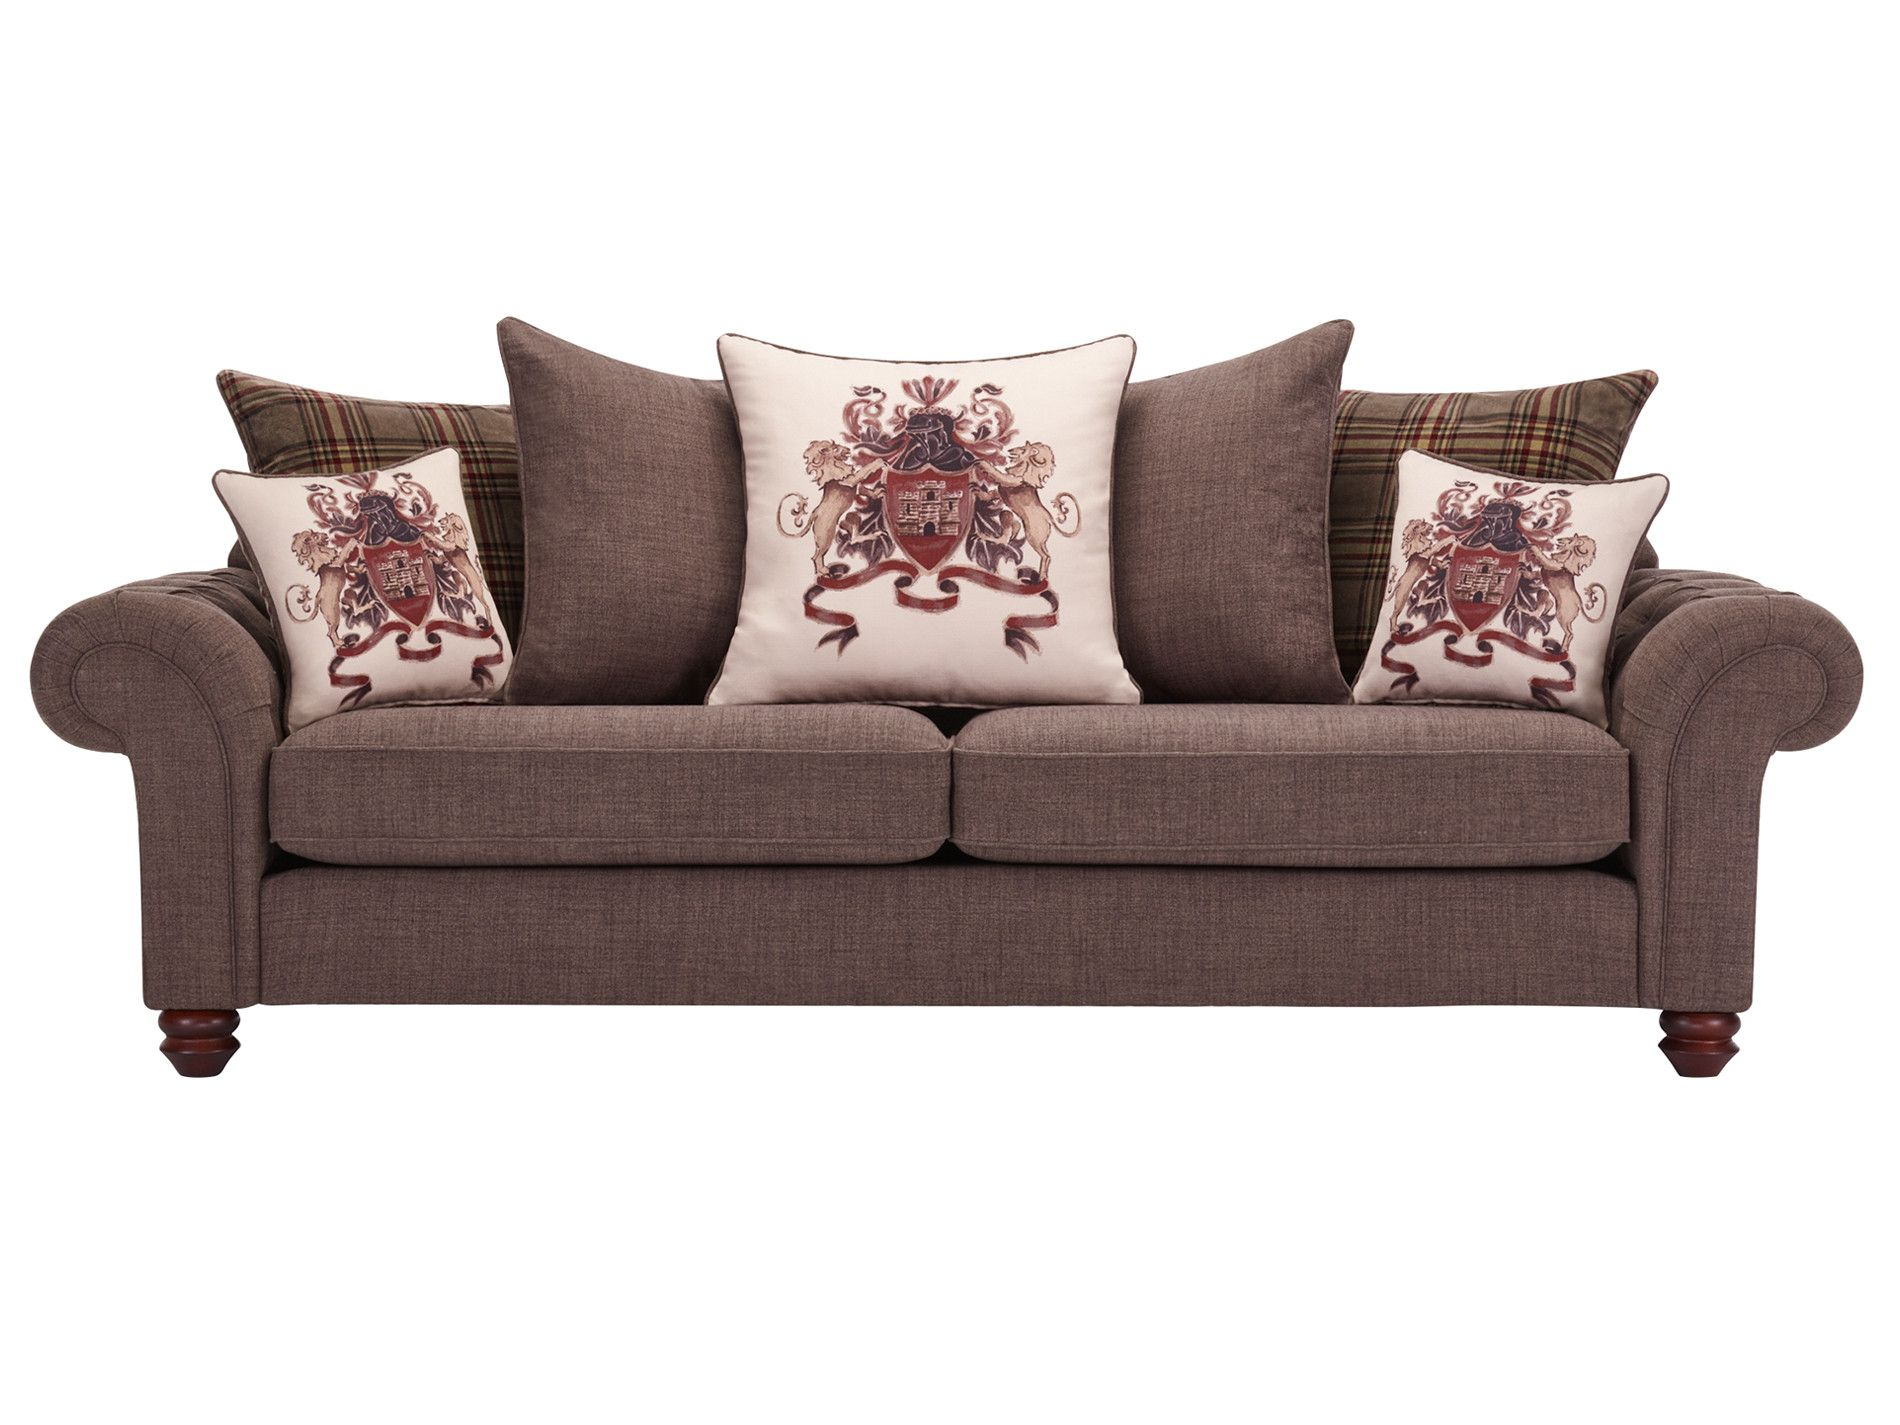 Sandringham 4 Seater Pillow Back Sofa In Brown With Beige